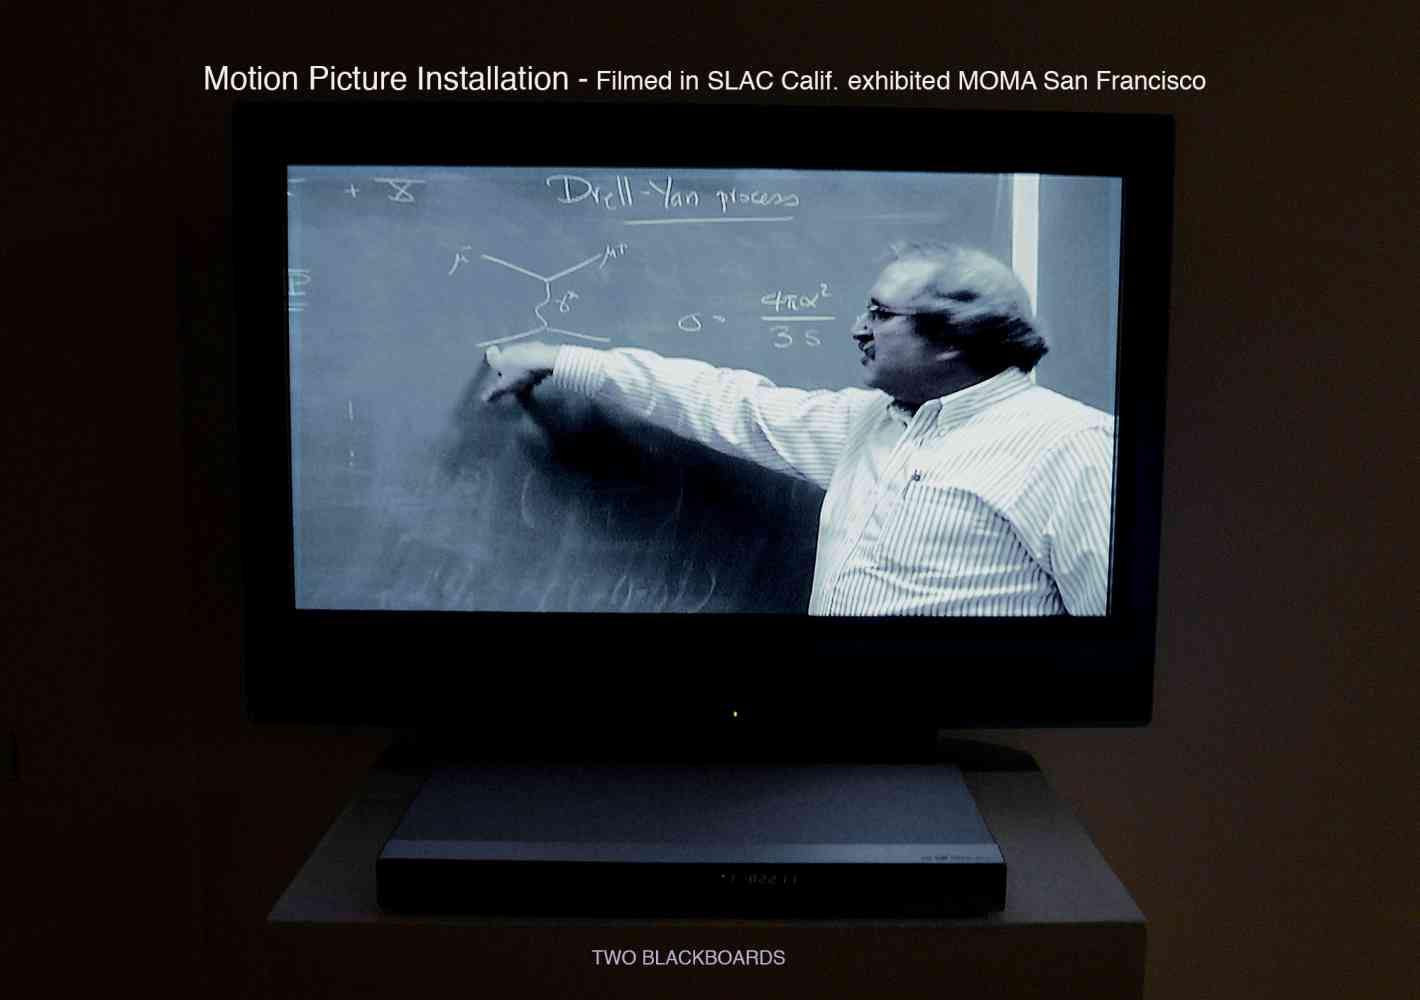 'Two Blackboards' 45min (Research) Motion Picture Installation as continuous projection loop. First shown MOMA San Francisco - In Collaboration with Michael Peskin, Head of the Theory Division, SLAC Stanford. What is Dark Energy? How many colours in a quark?